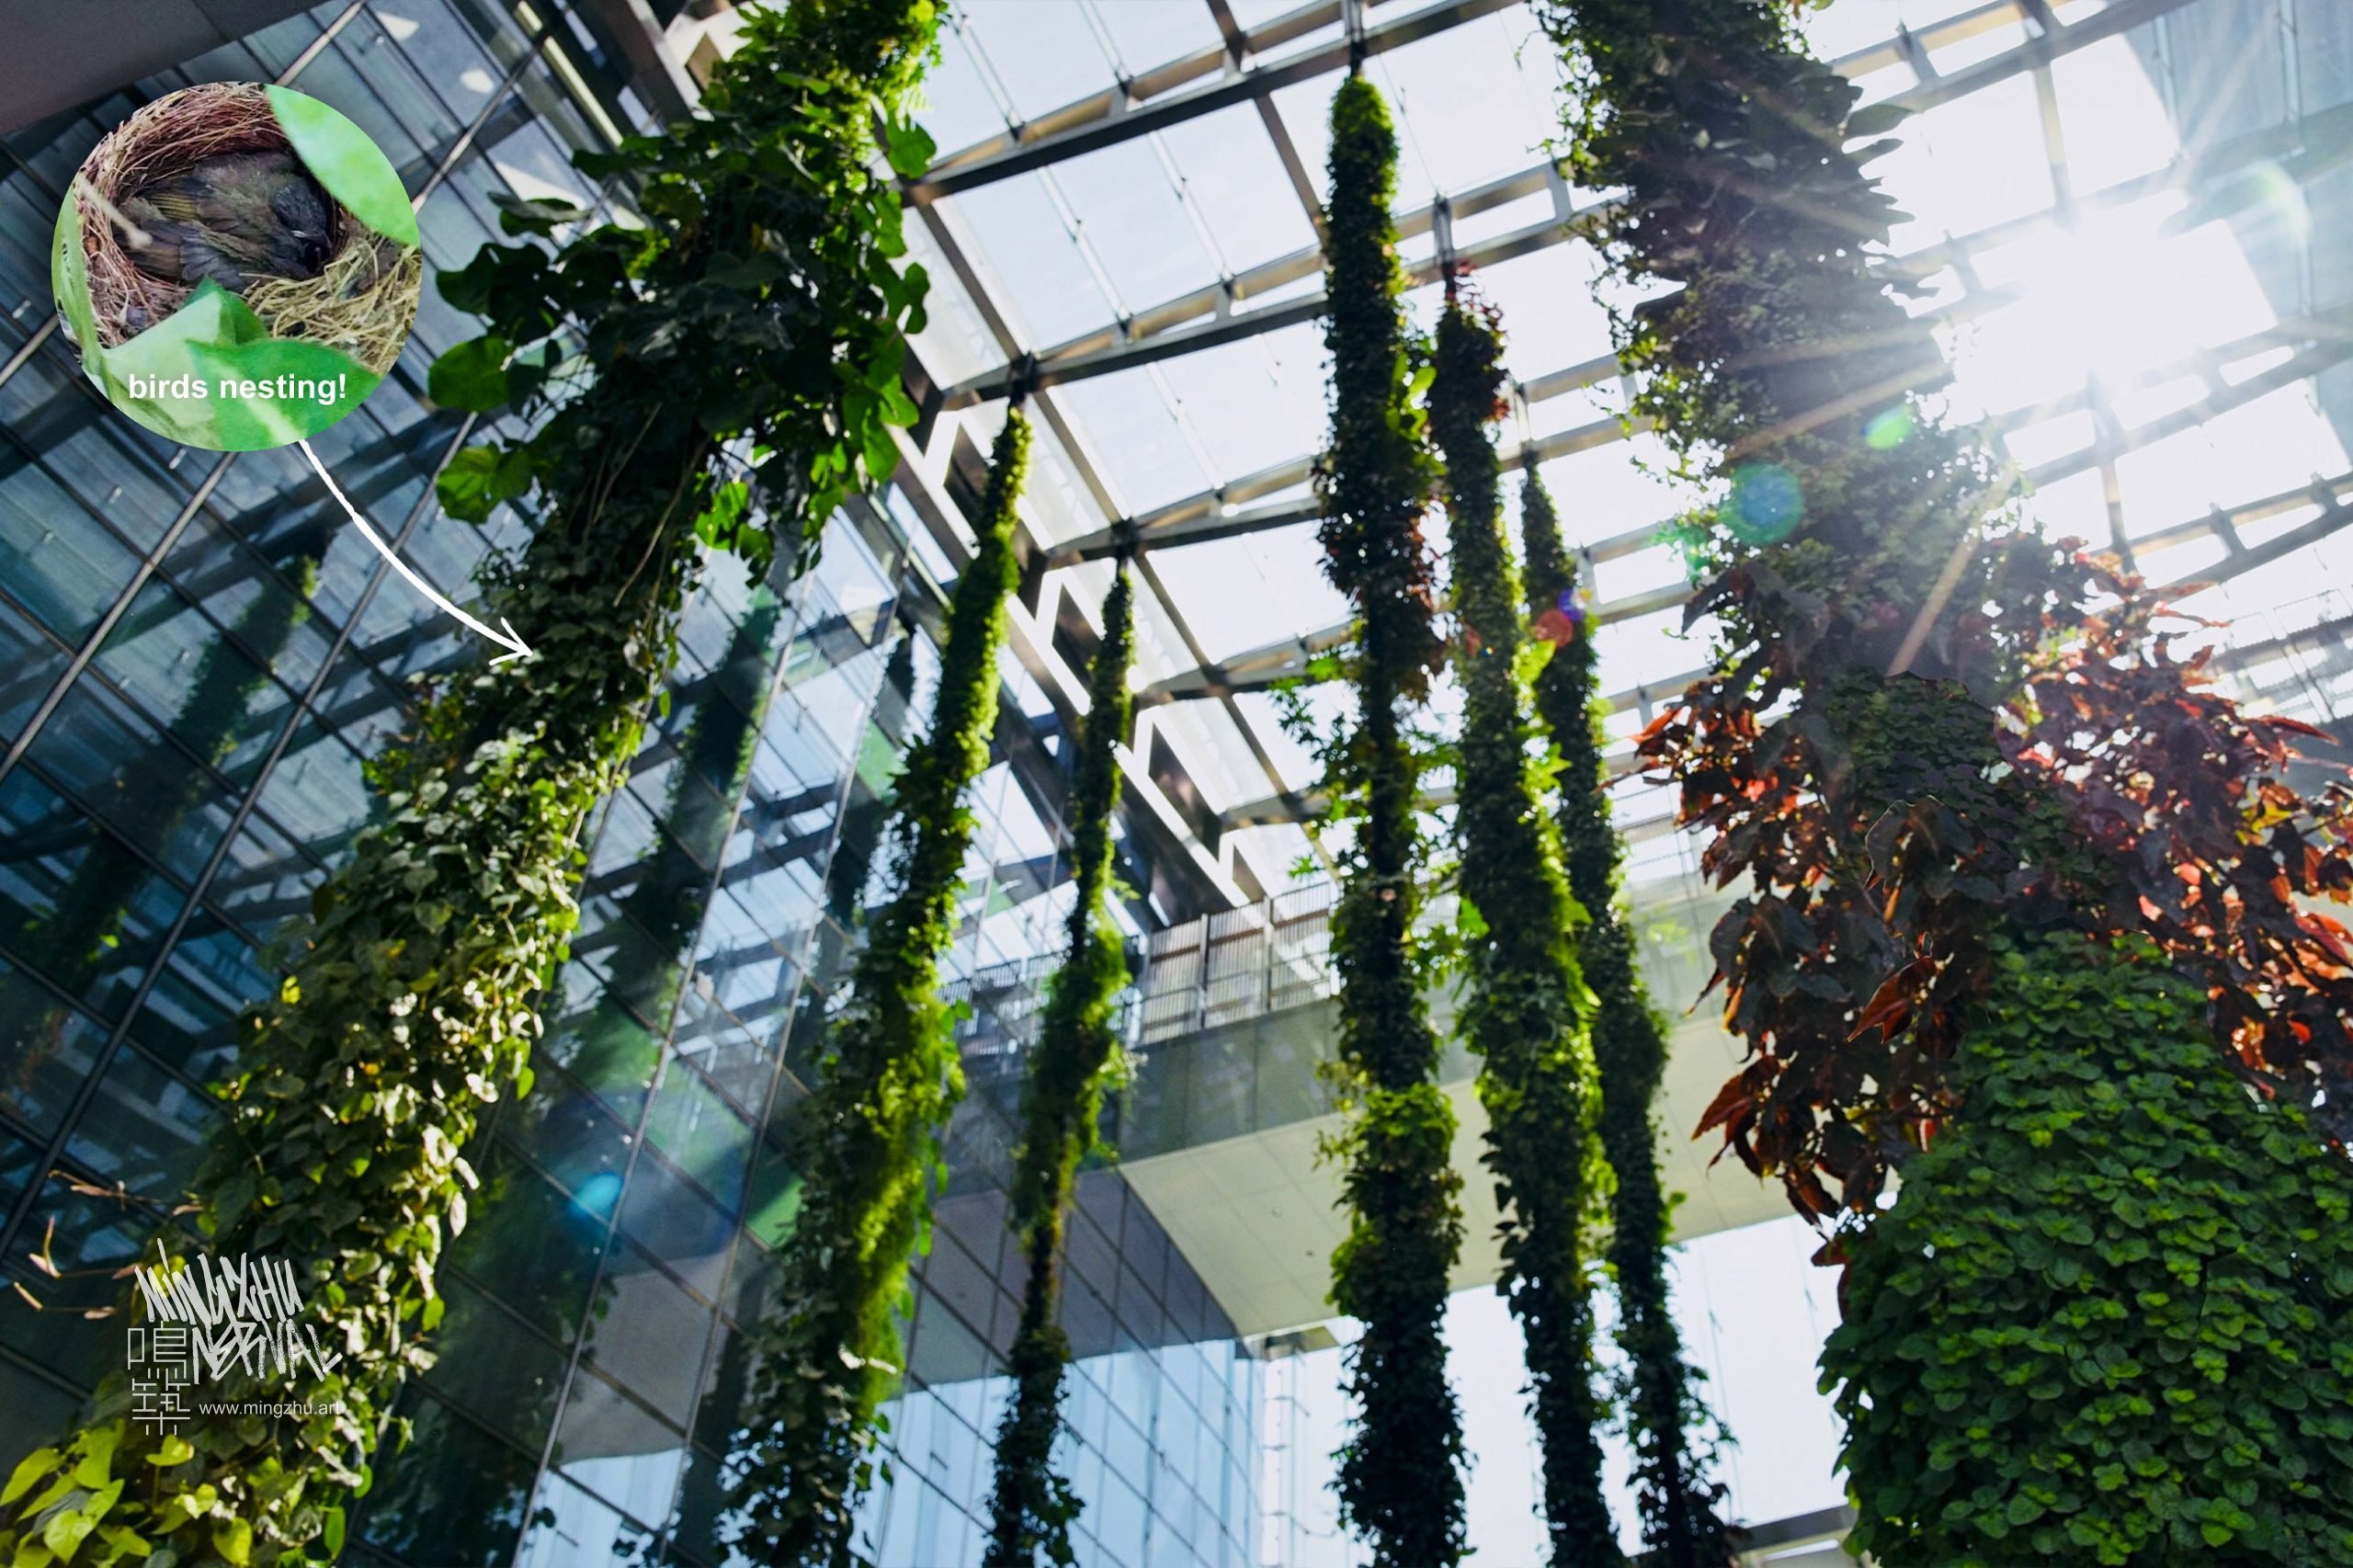 Mingzhu Nerval, living walls experts designed a liana garden at the SCC Tower in Shenzhen, 2016